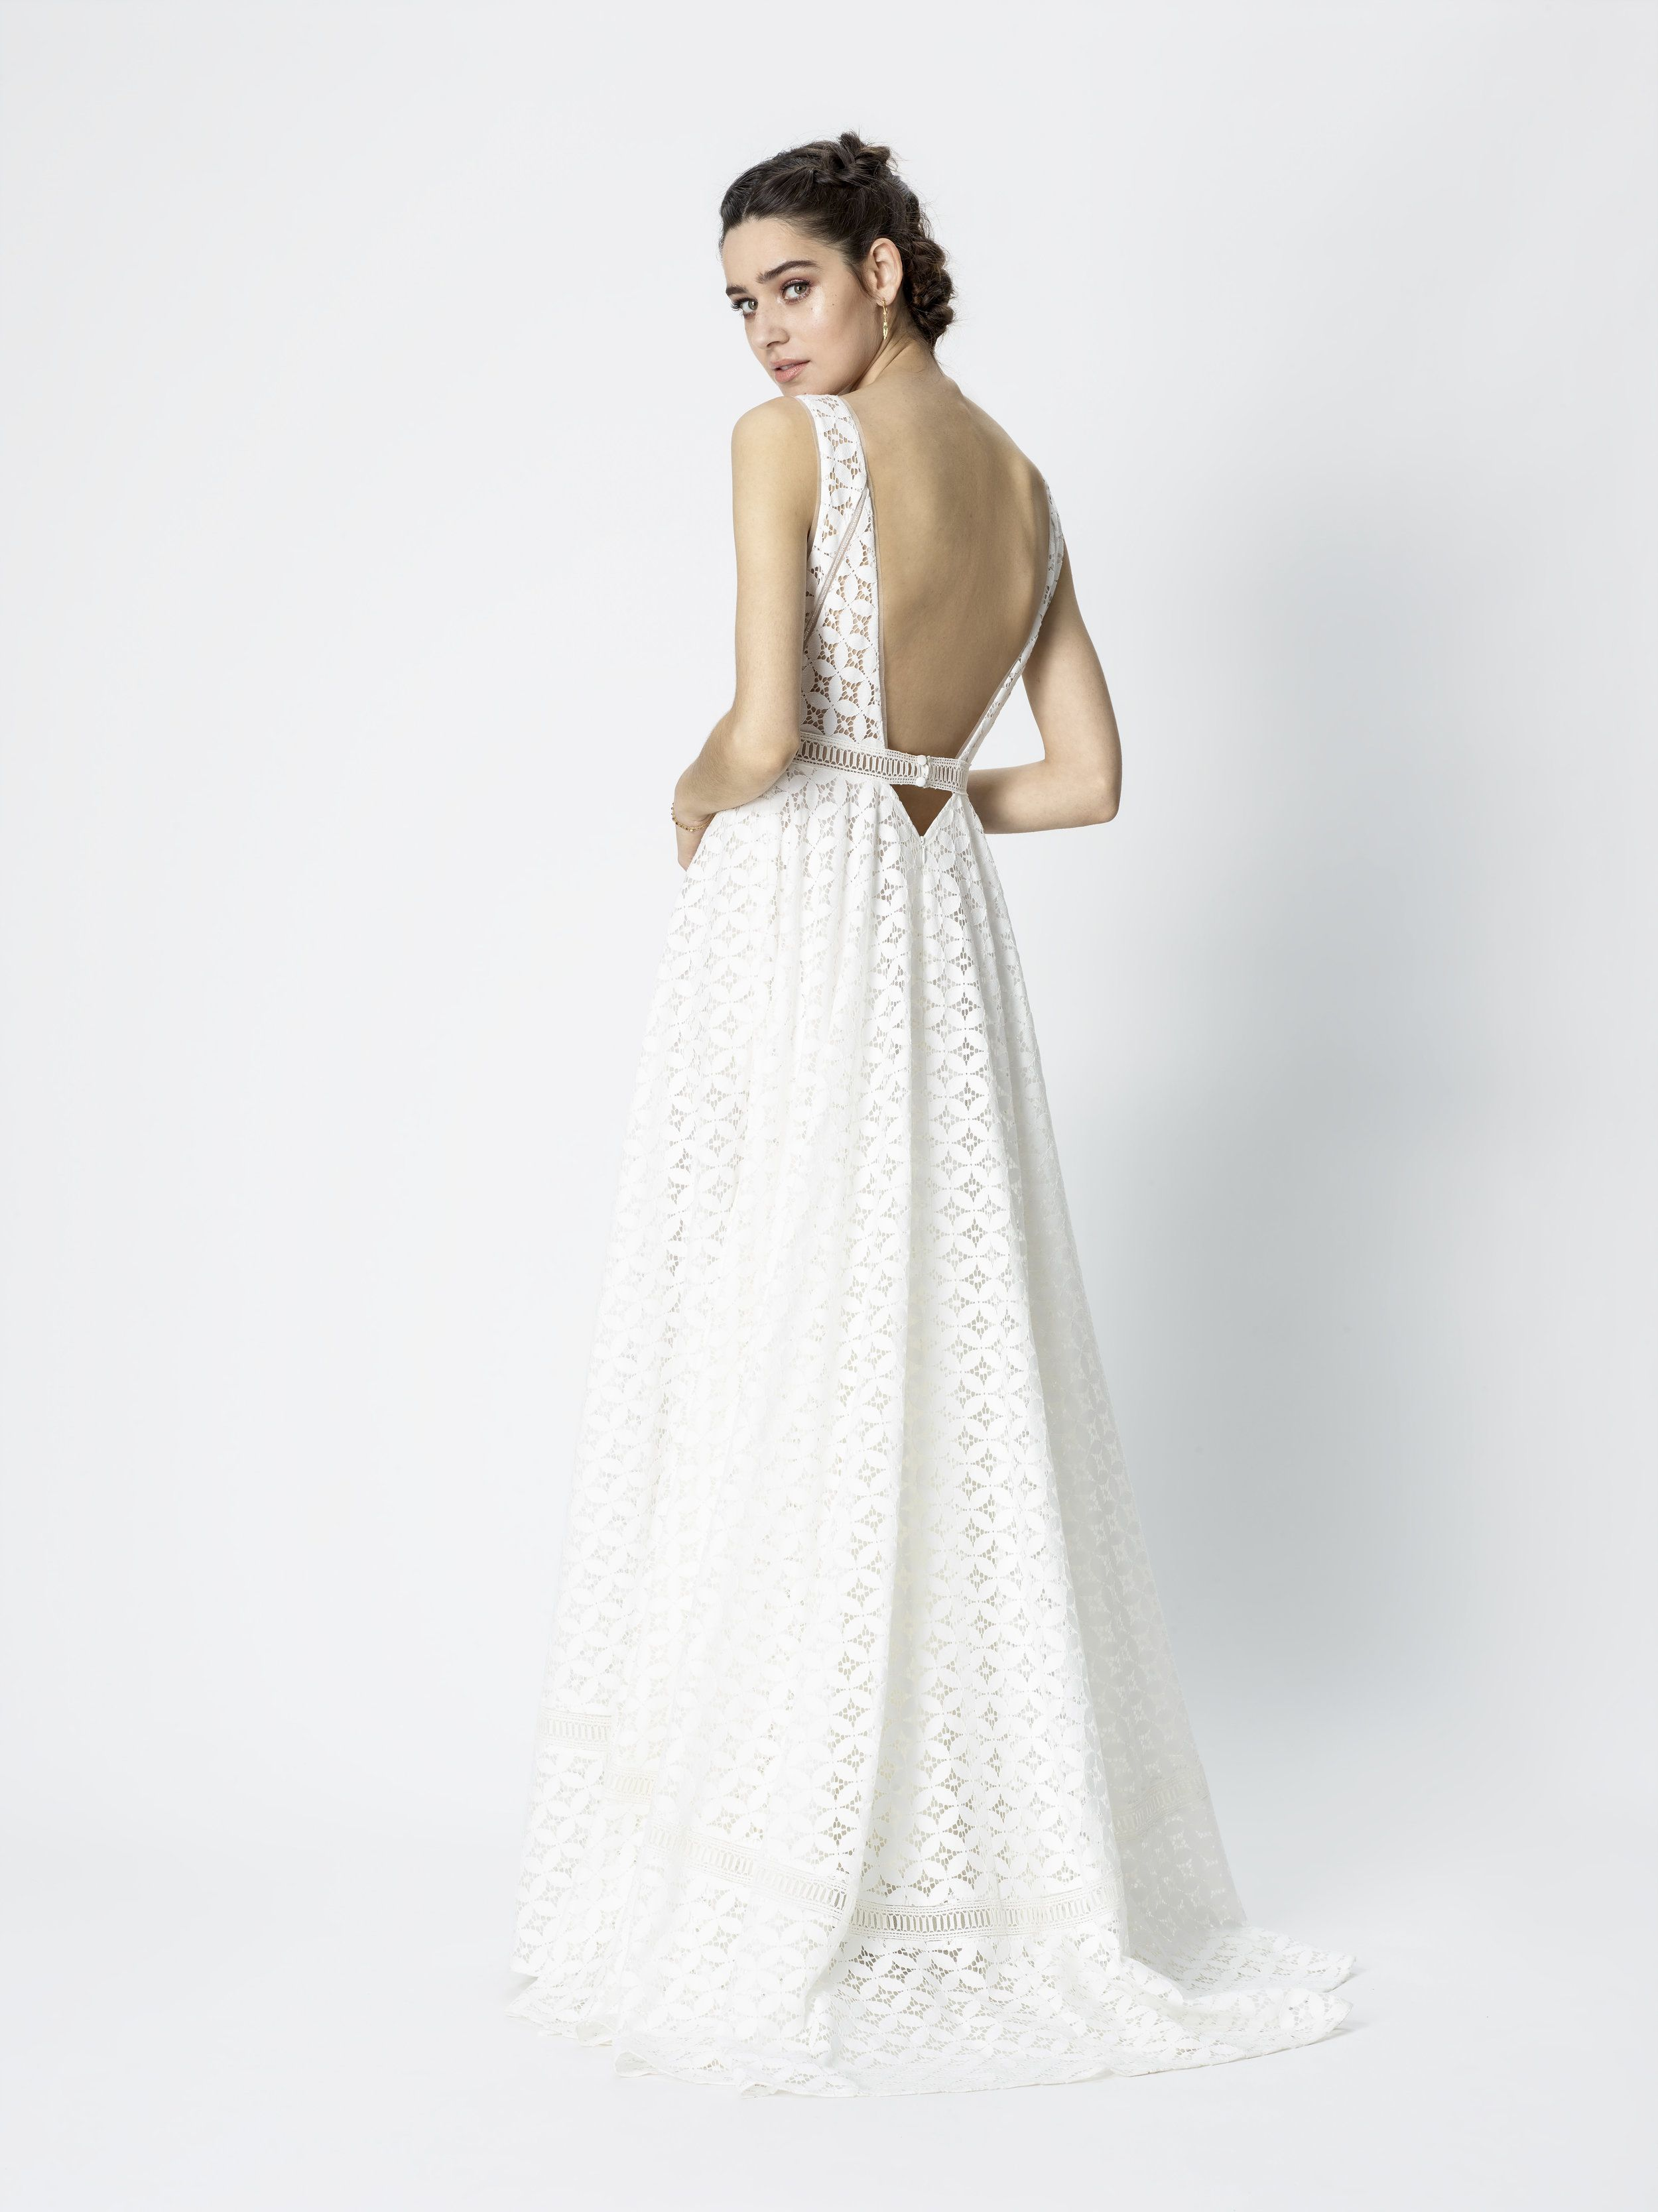 Rembo Styling Glory Ricks The Low Backed Wedding Dress Look All Over Lace In A Boho Style